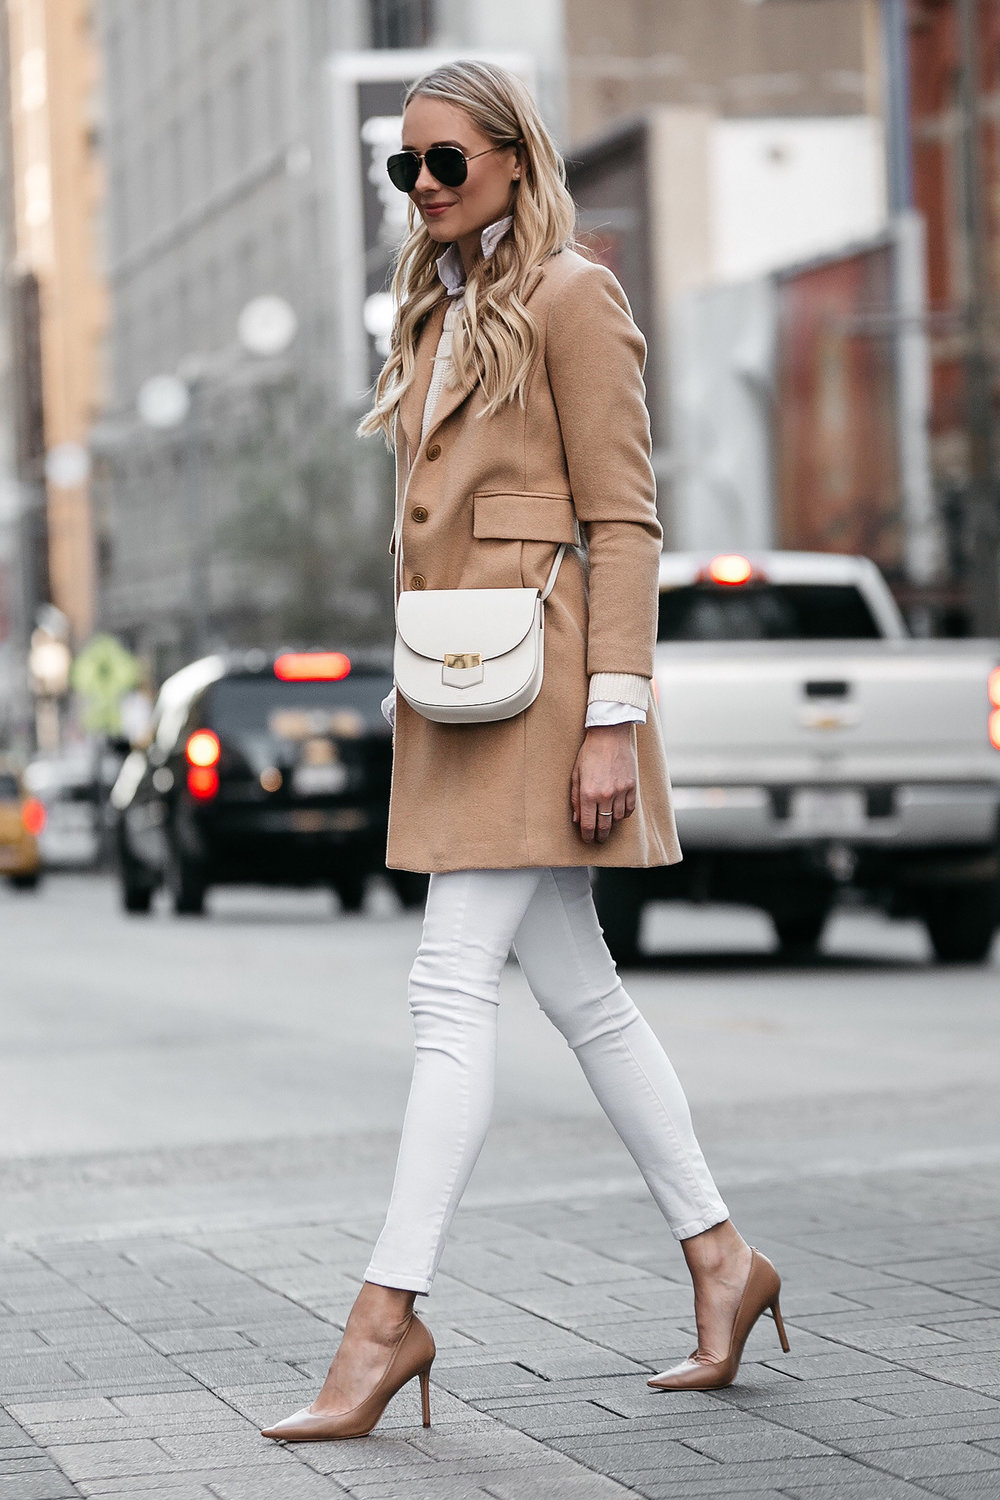 I haven't owned white jeans since junior high but I think 2018 is the year I'm going to bring them back.  I love this neutral/monochrome look.  Also, need to get nude pumps ASAP.